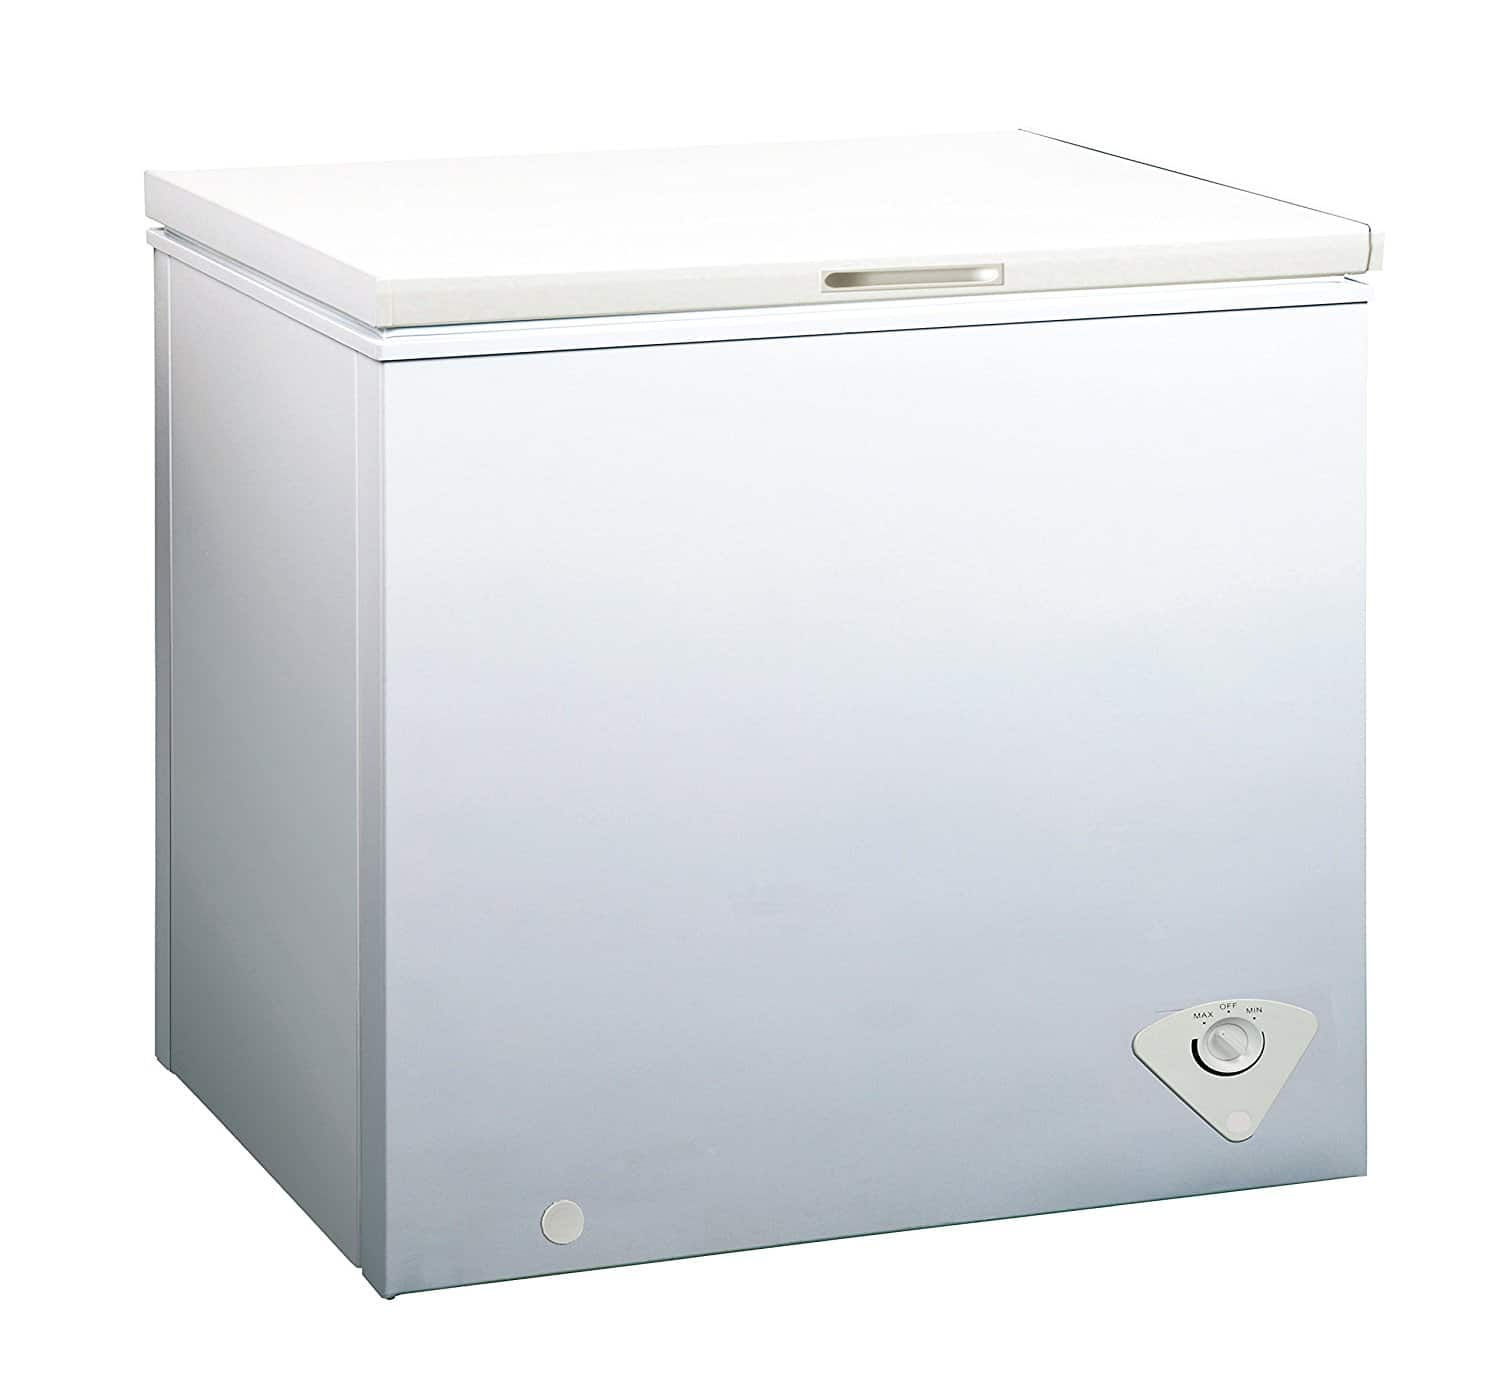 Best Chest Freezer For Garage - Our expert reviews - On